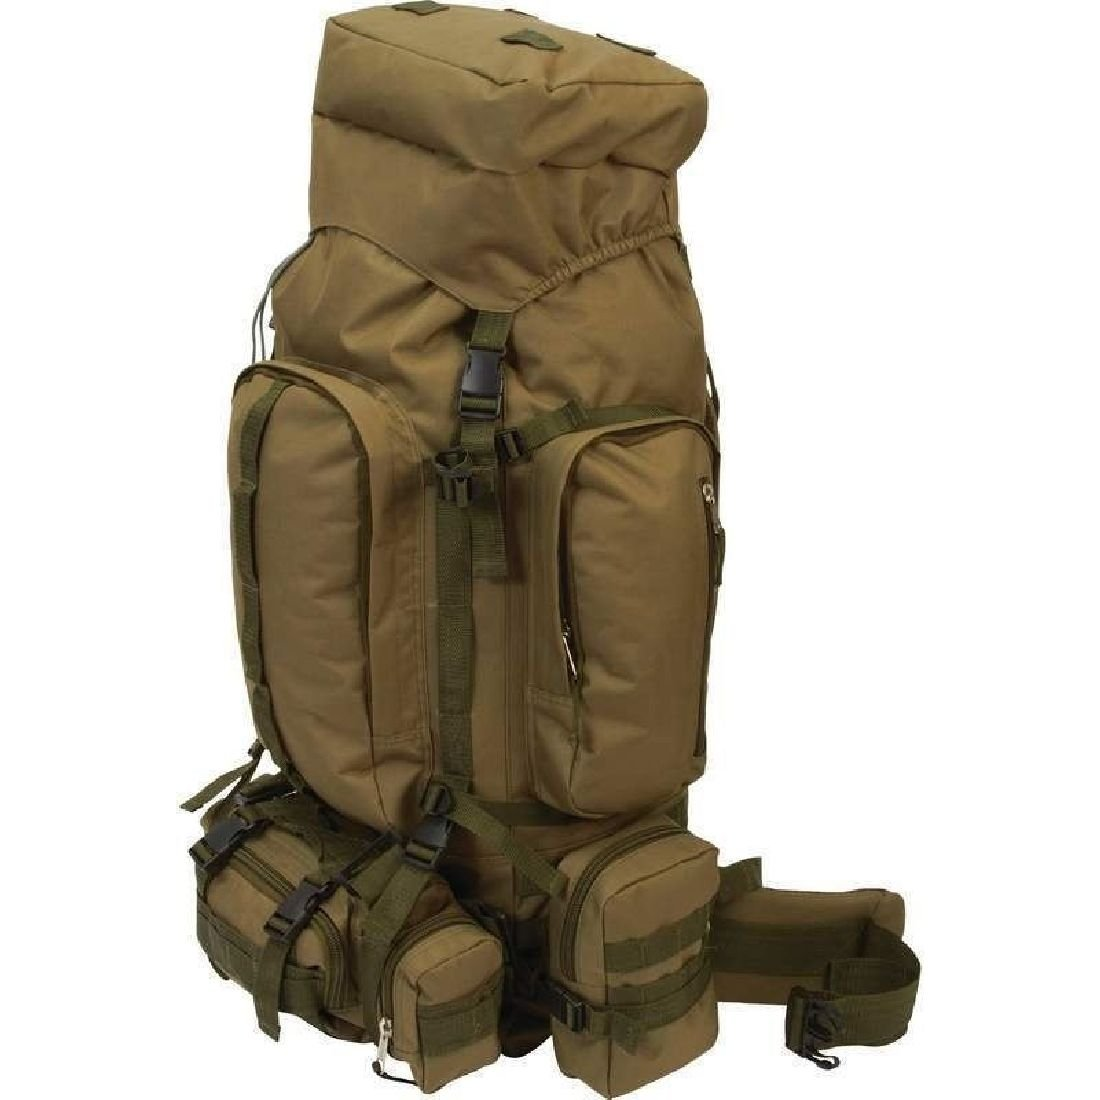 Big 35'' Olive Green Backpack Day Pack Hiking Mountaineer Camping Mountain Bag